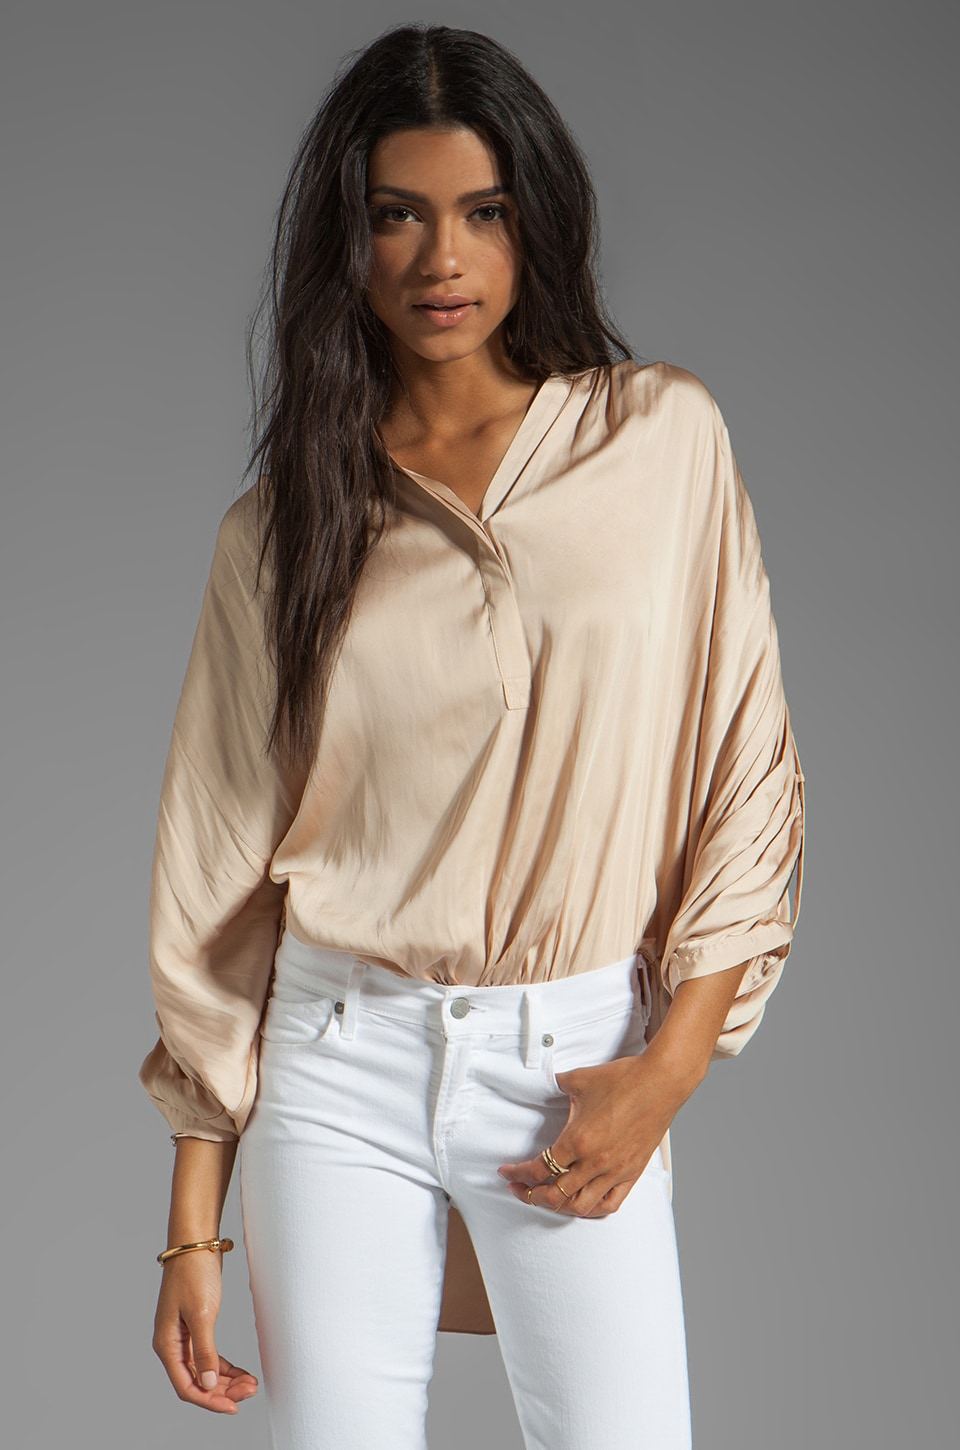 BCBGMAXAZRIA Butterfly Sleeve Top in Powder